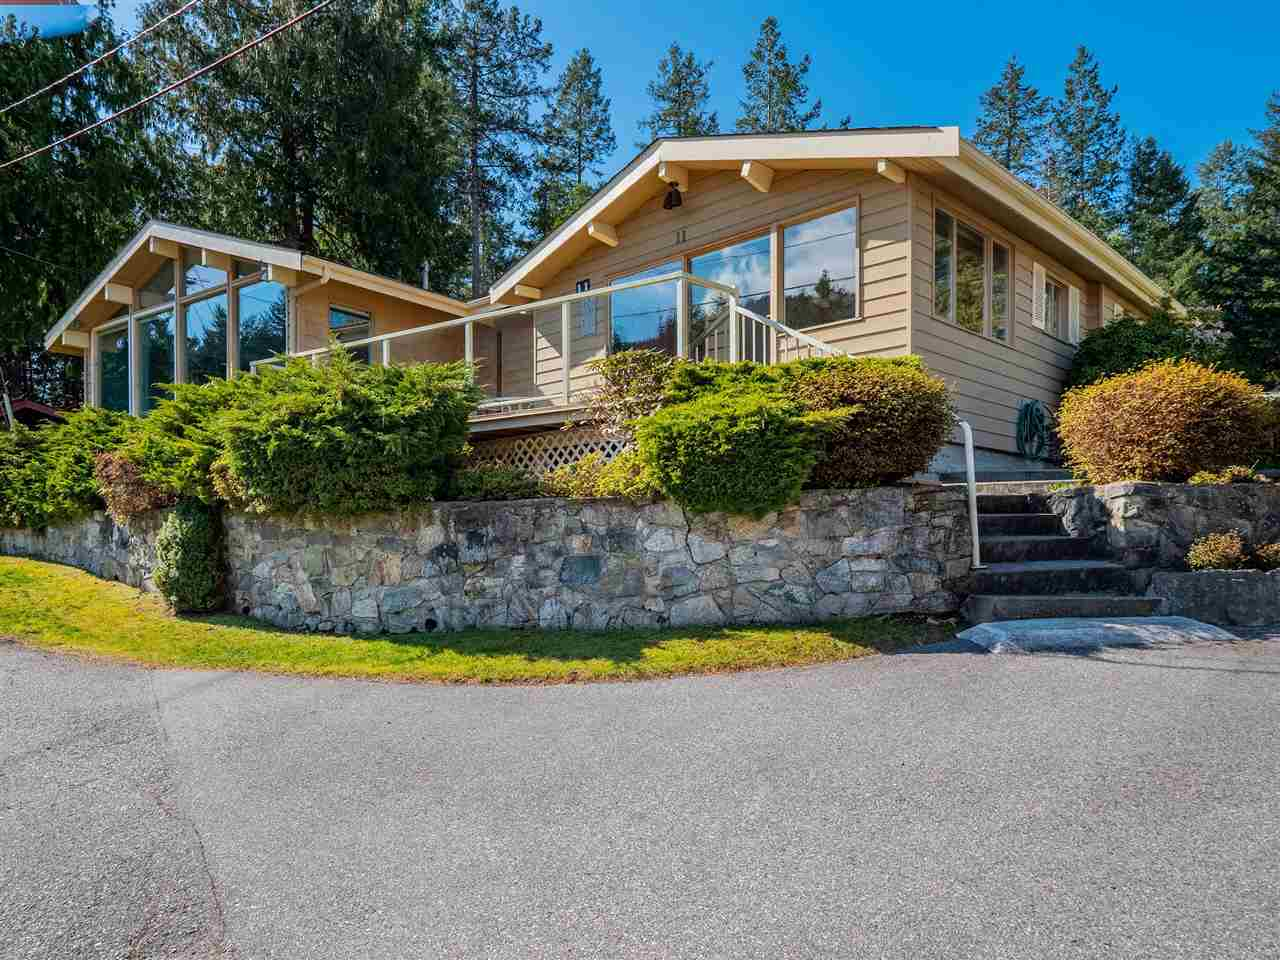 11 4995 GONZALES ROAD - Pender Harbour Egmont House/Single Family for sale, 2 Bedrooms (R2447947) - #3